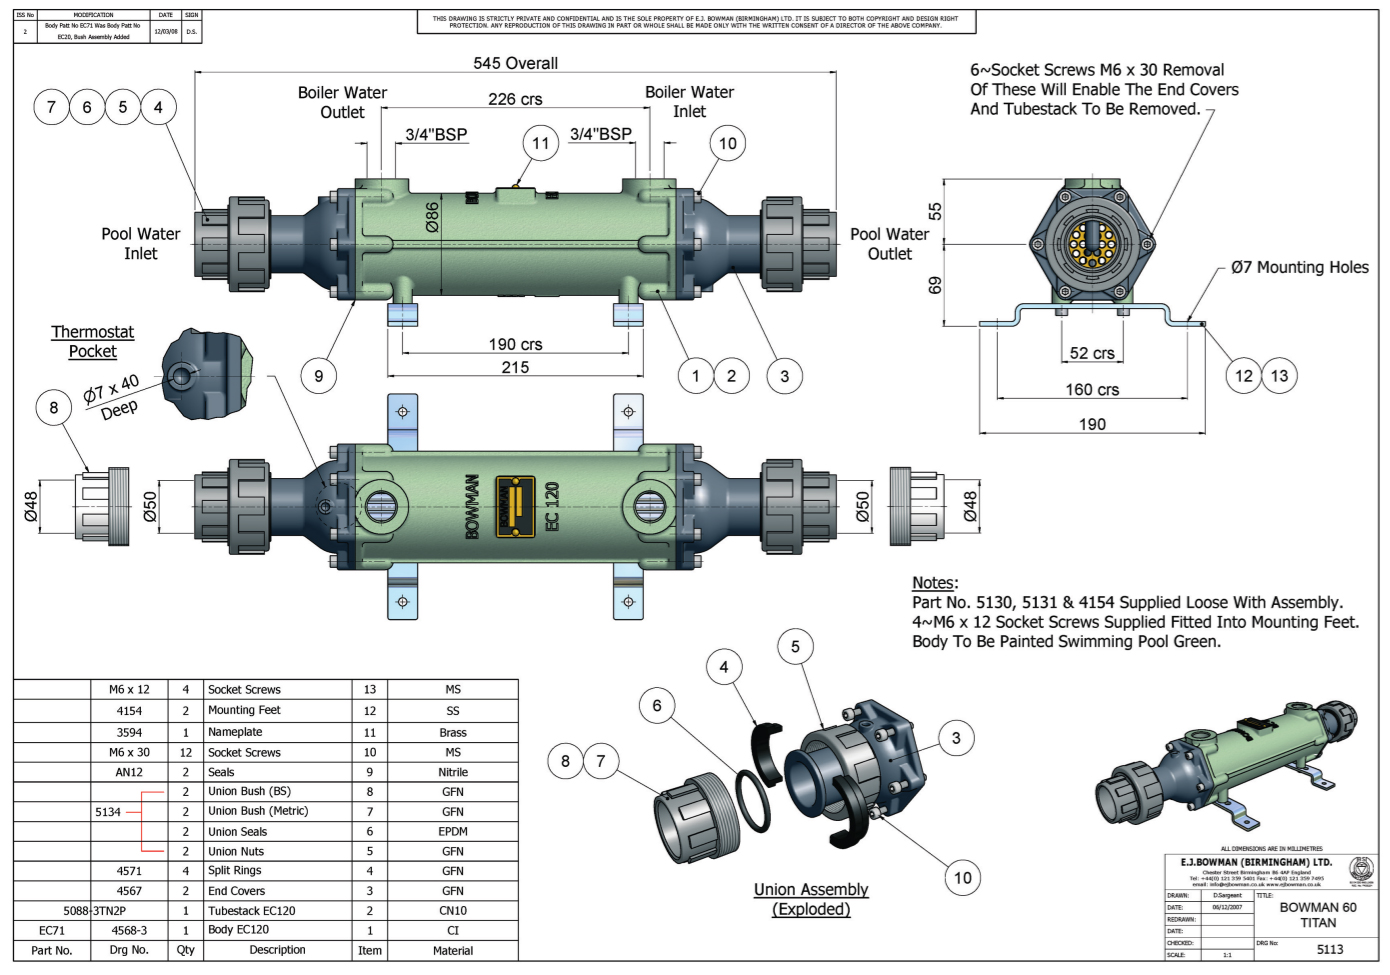 Drawing of the heat exchanger BOWMAN 60 Titan